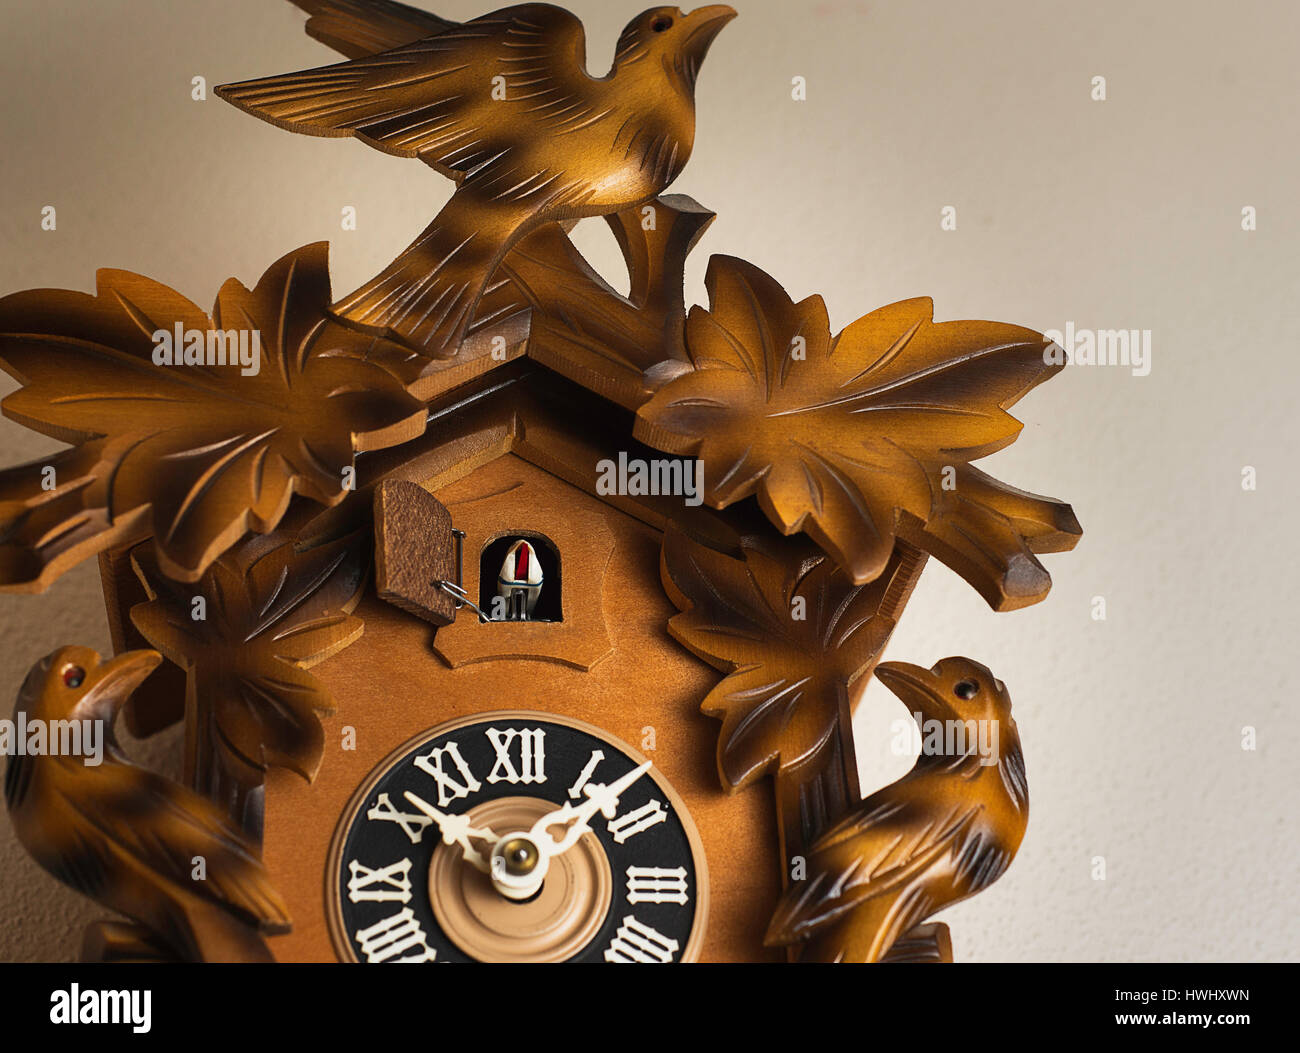 A cuckoo clock on a wall. - Stock Image